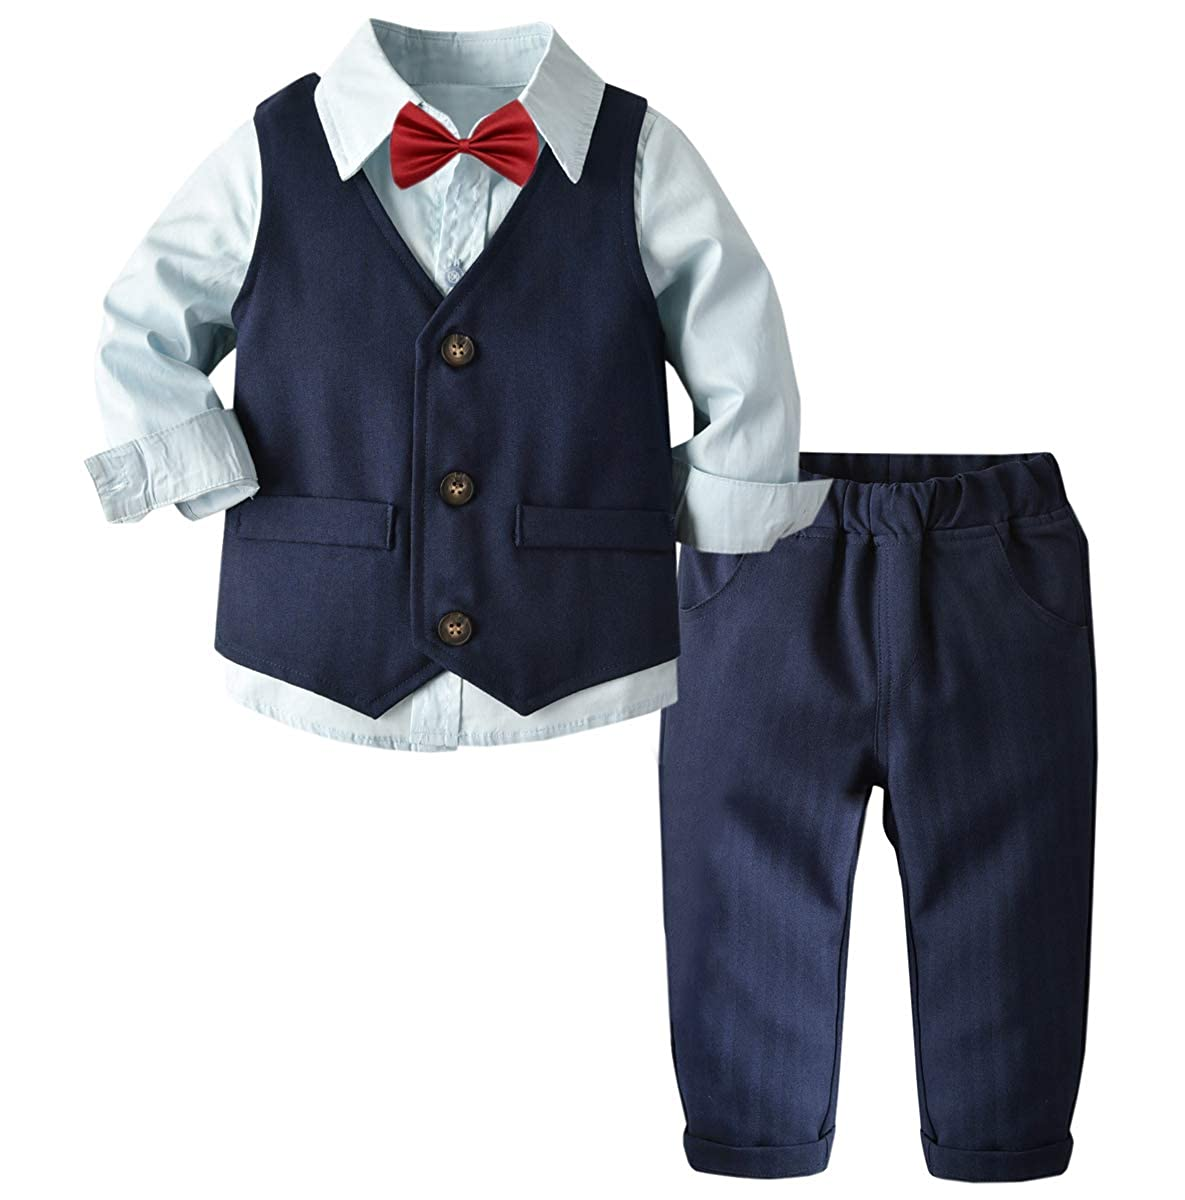 Pants Set 6 Years Betusline Baby /& Little Boys Tuxedo Dress Shirt 12 Month Vest